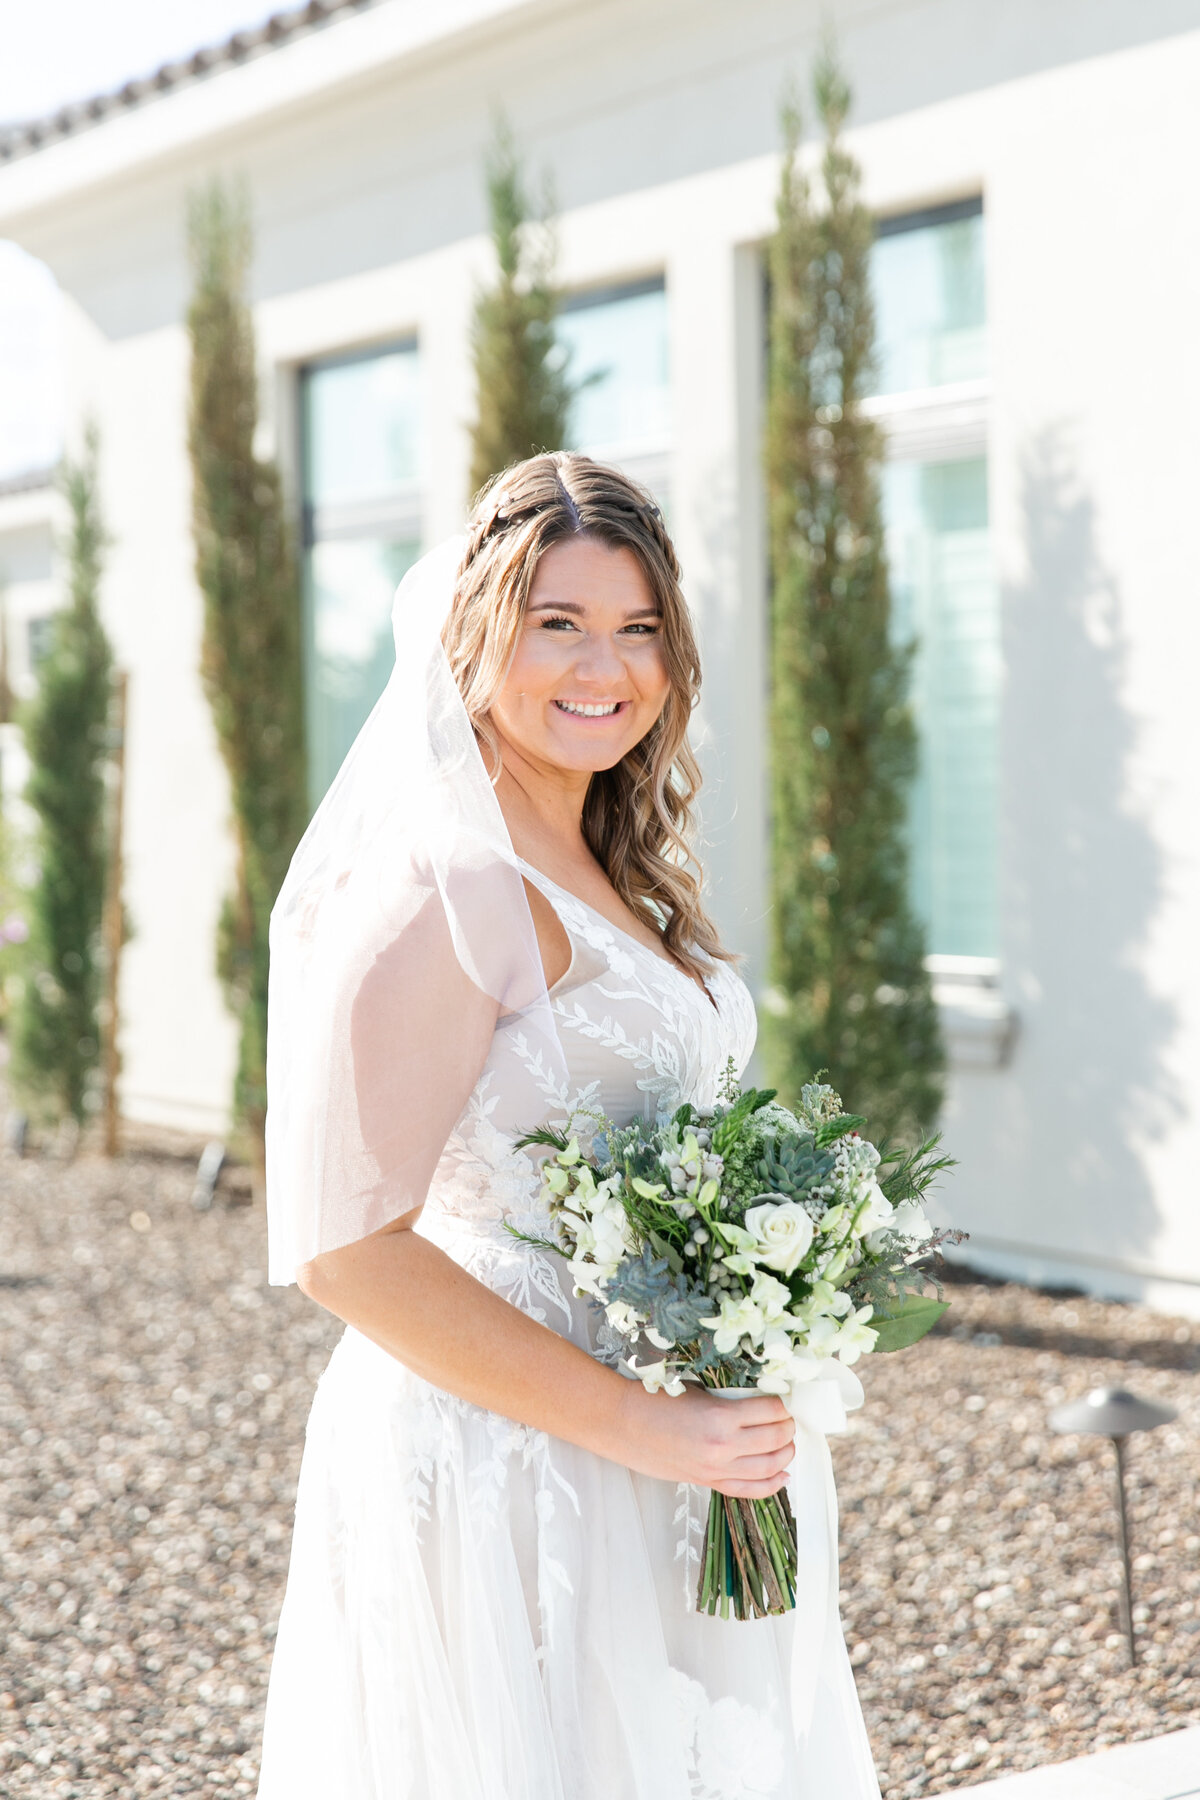 Karlie Colleen Photography - Arizona Backyard wedding - Brittney & Josh-92